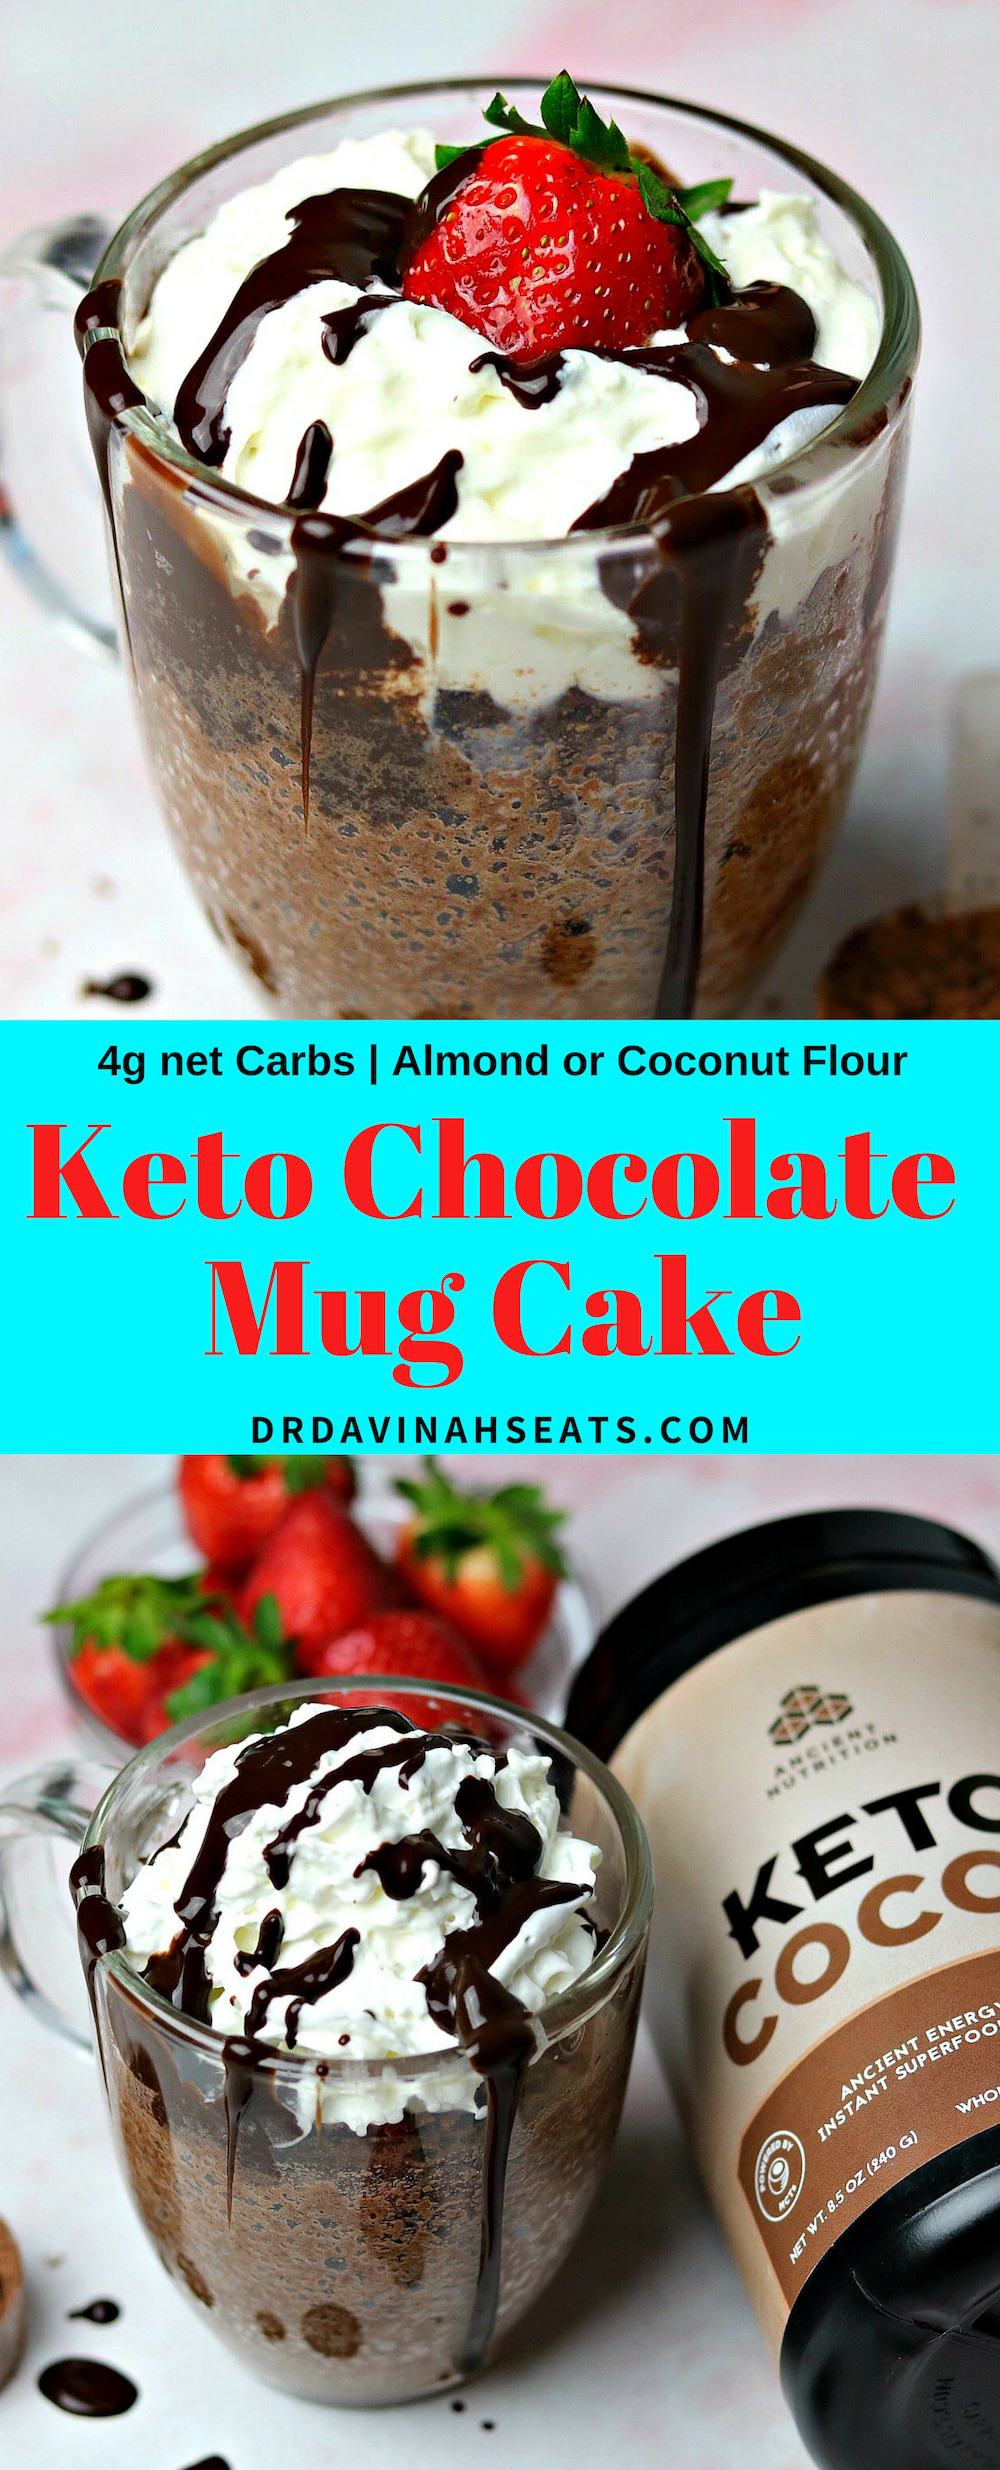 A 2-minute keto chocolate mug cake recipe that includes almond or coconut flour. Tips to sub cocoa powder with your favorite chocolate collagen peptides. #ketomugcake #mugcake #chocolatecake #ketodessert